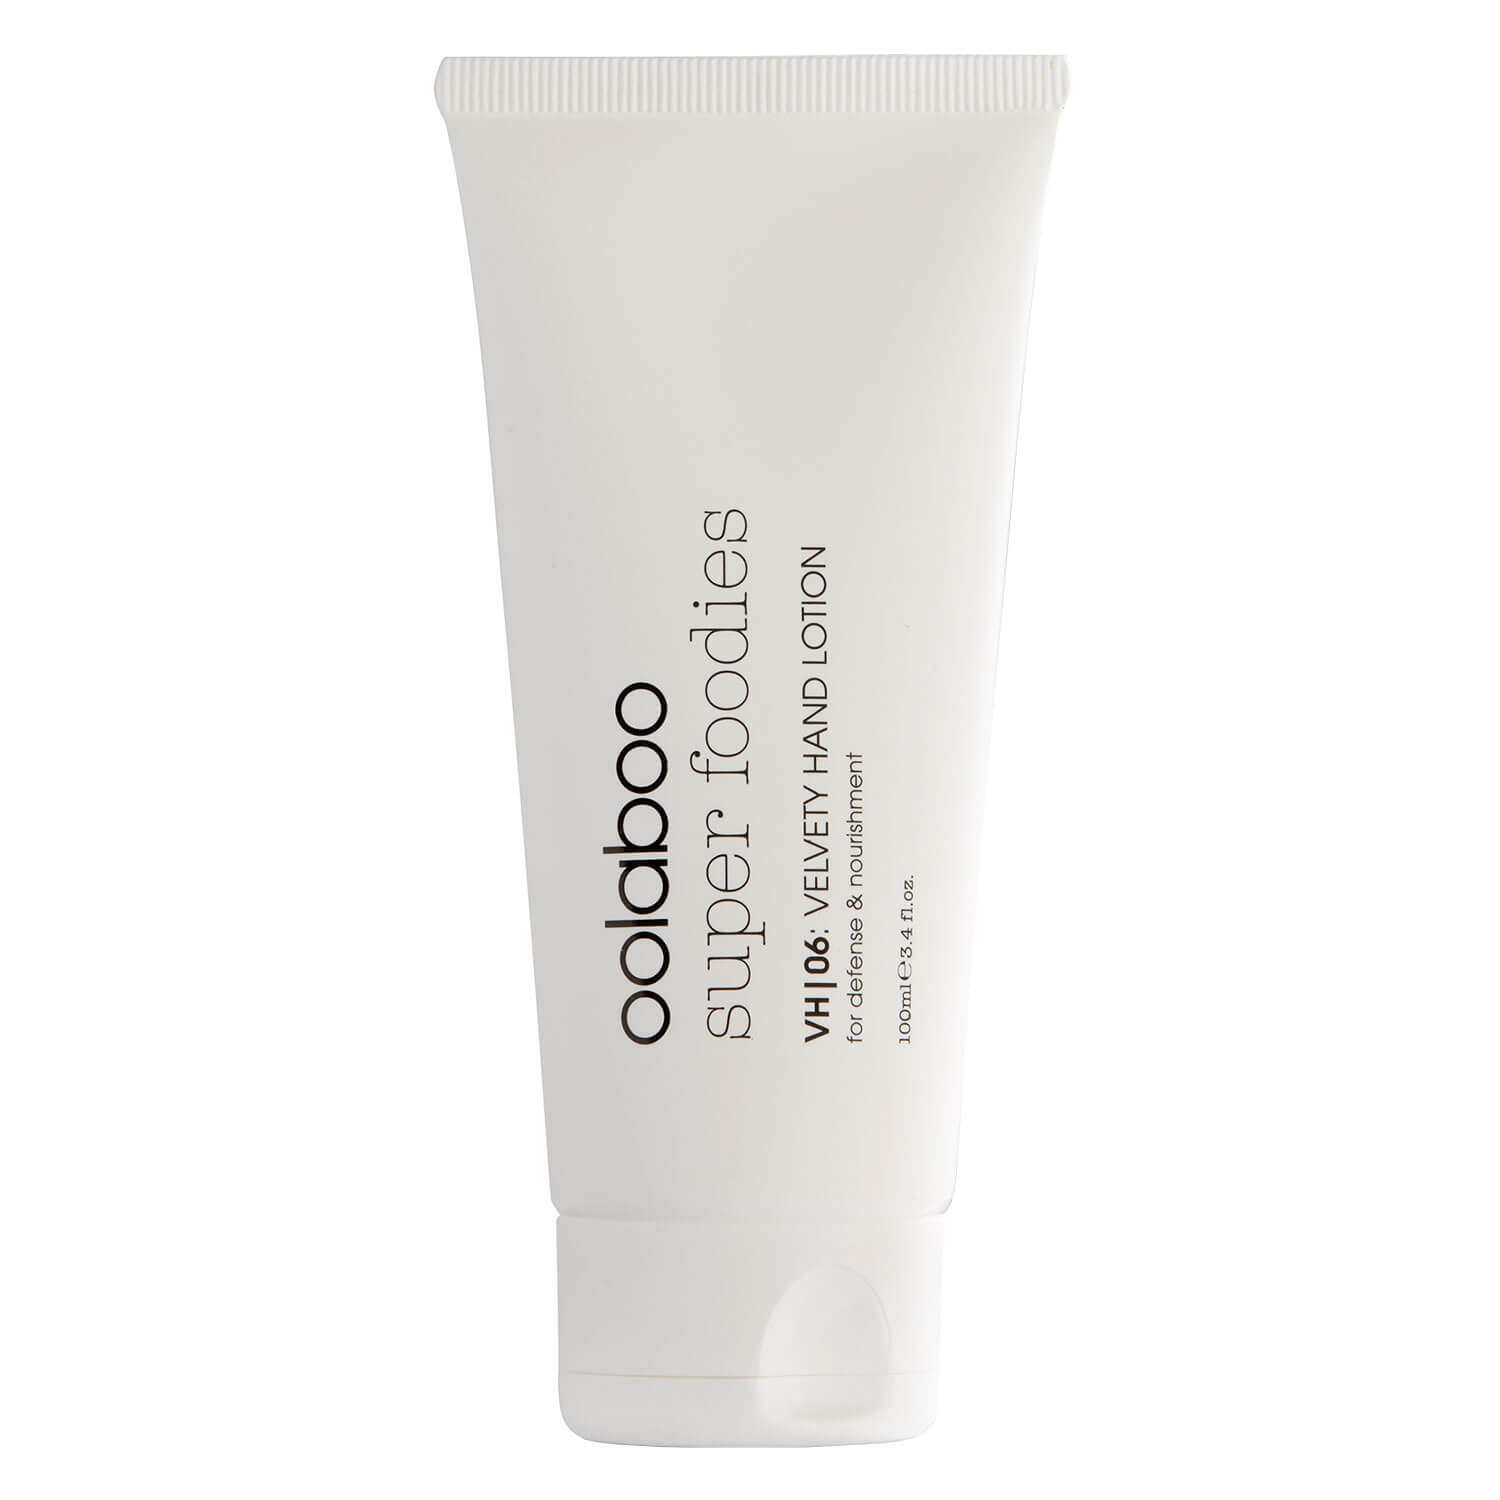 super foodies - velvety hand lotion - 100ml